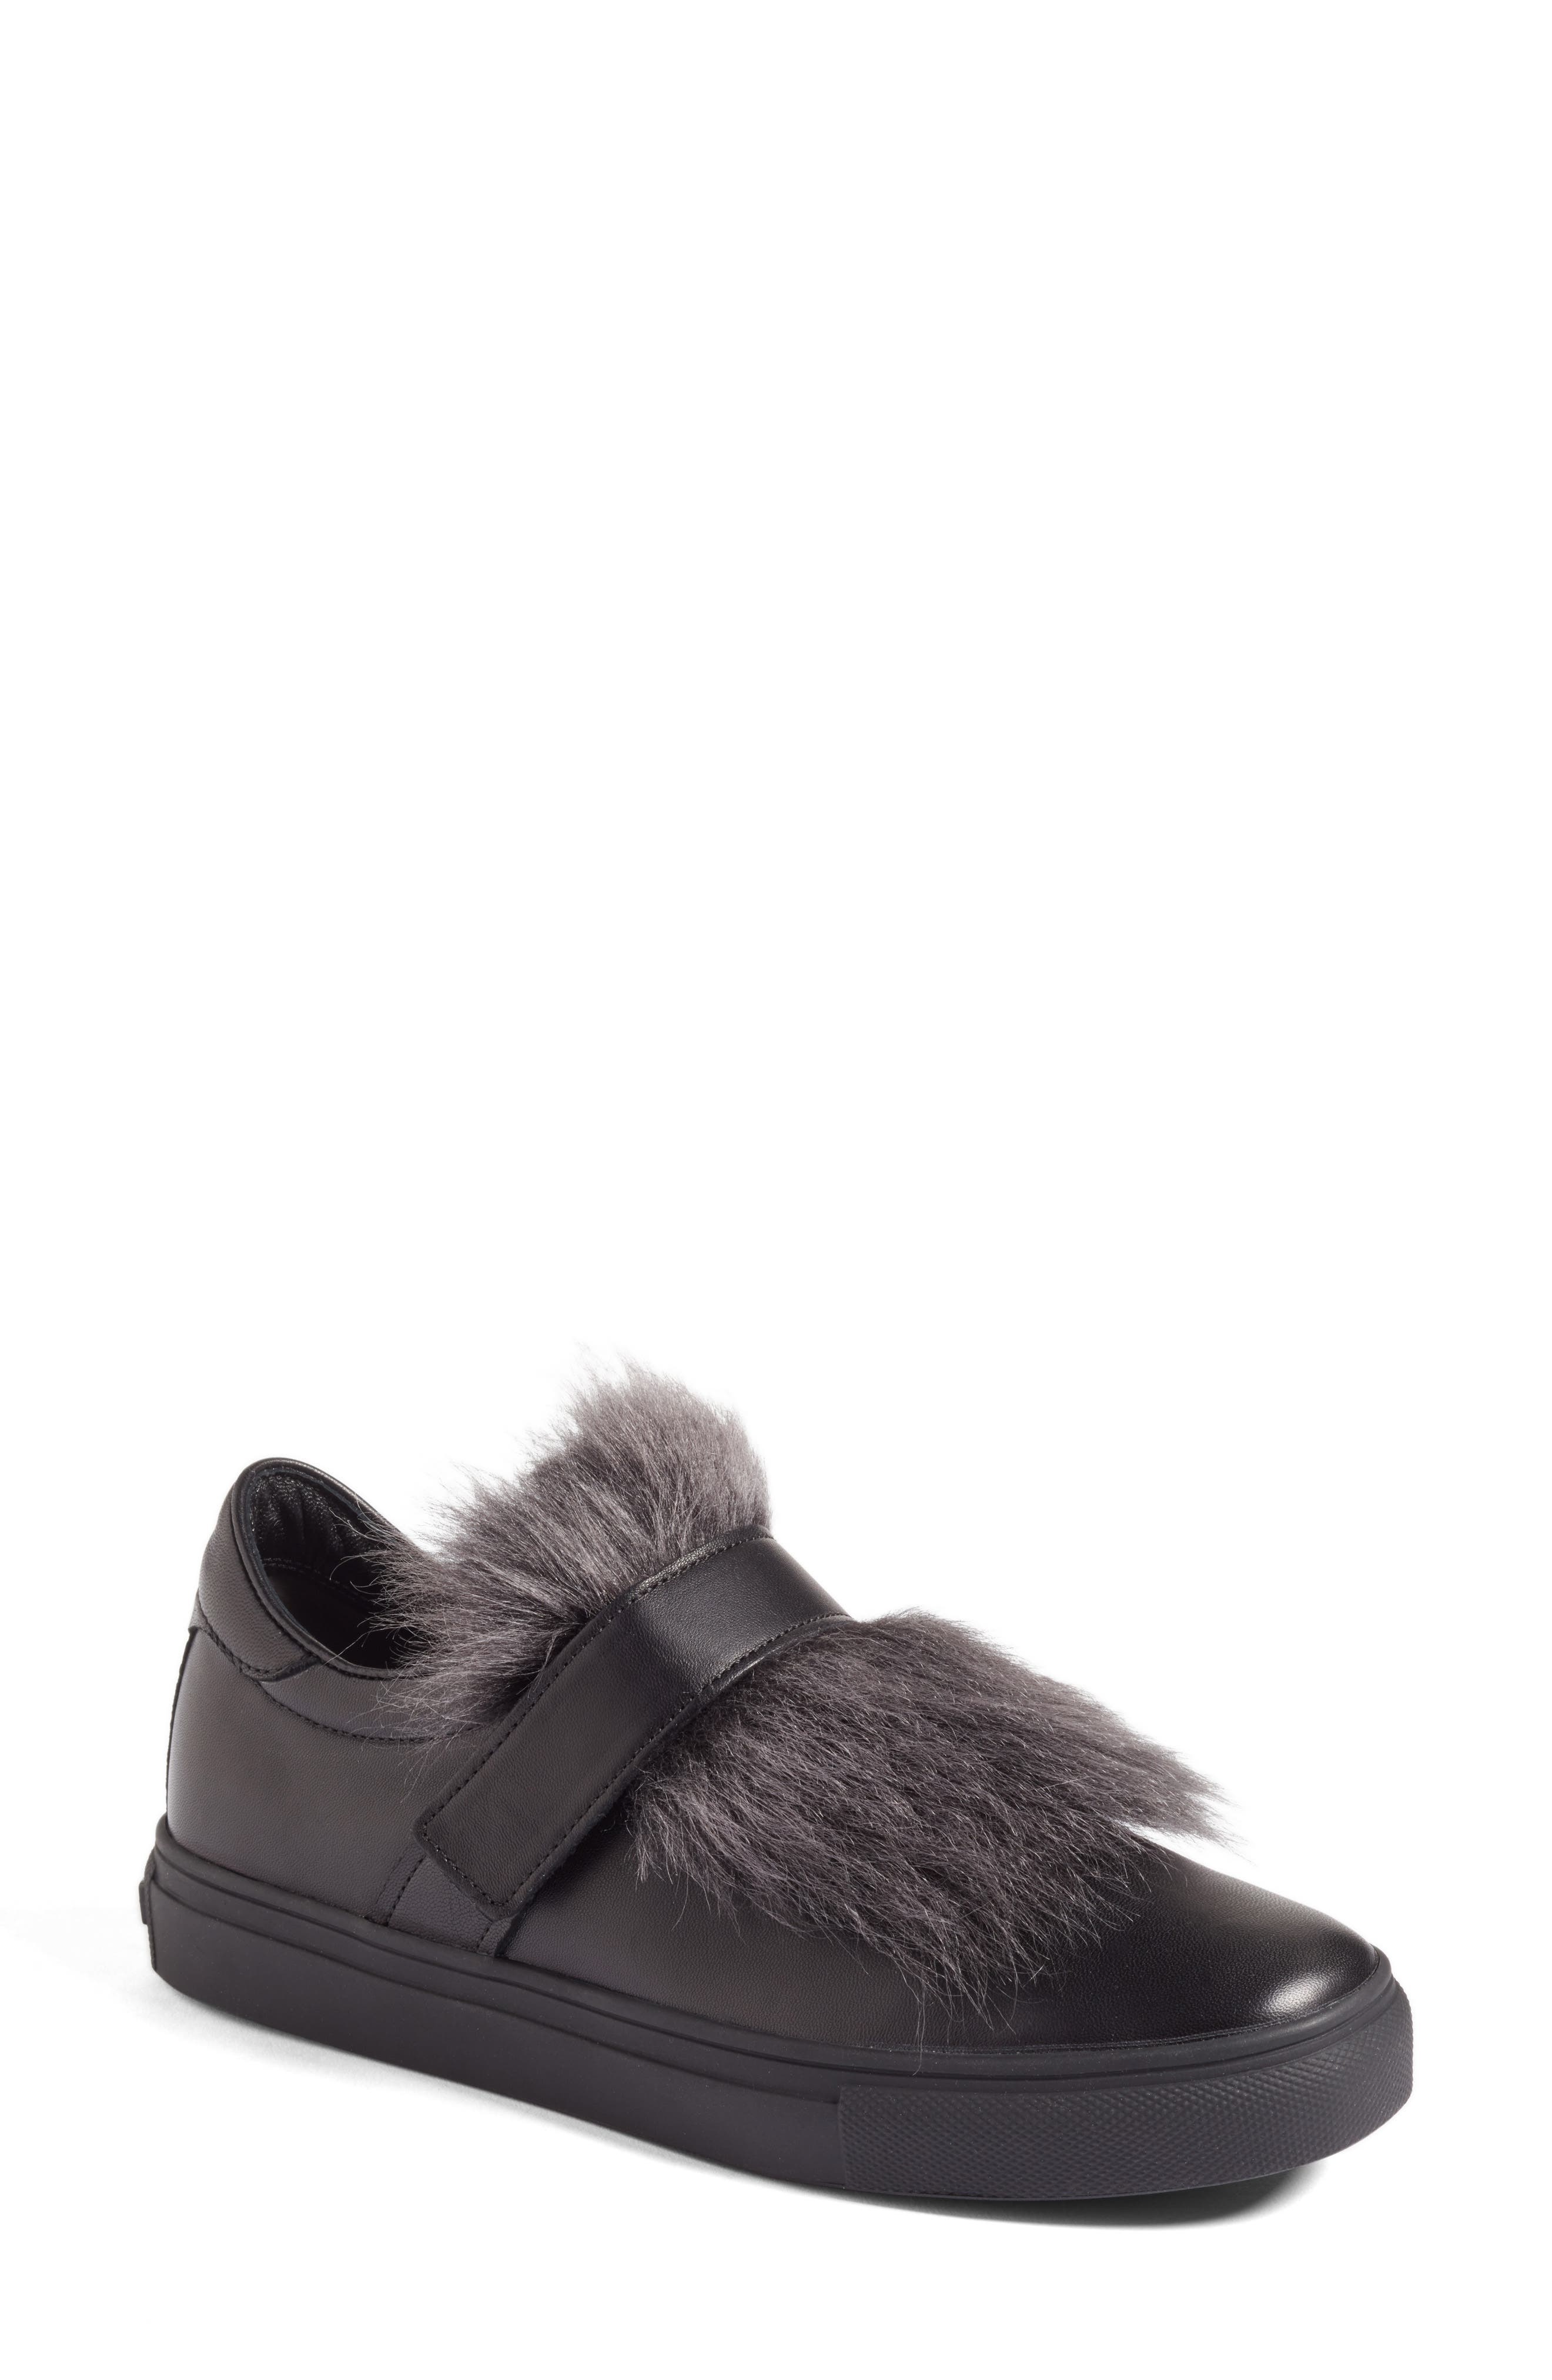 Kennel & Schmenger Basket Slip-On Sneaker with Genuine Shearling Trim,                             Main thumbnail 1, color,